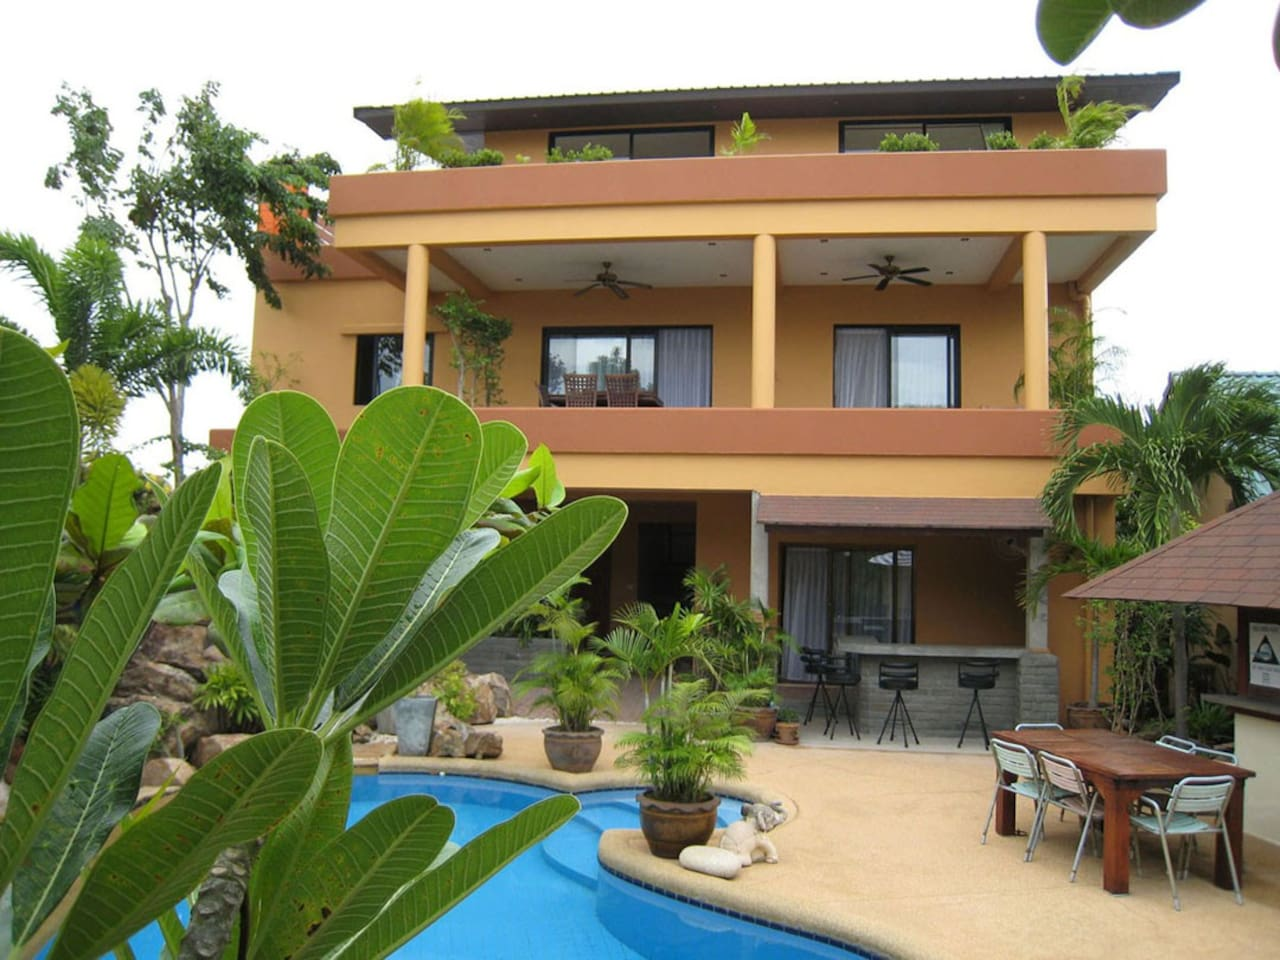 som villa @ tongson villas [3bedroom main villa within the tongson villas property [mater suite is the whole top level]